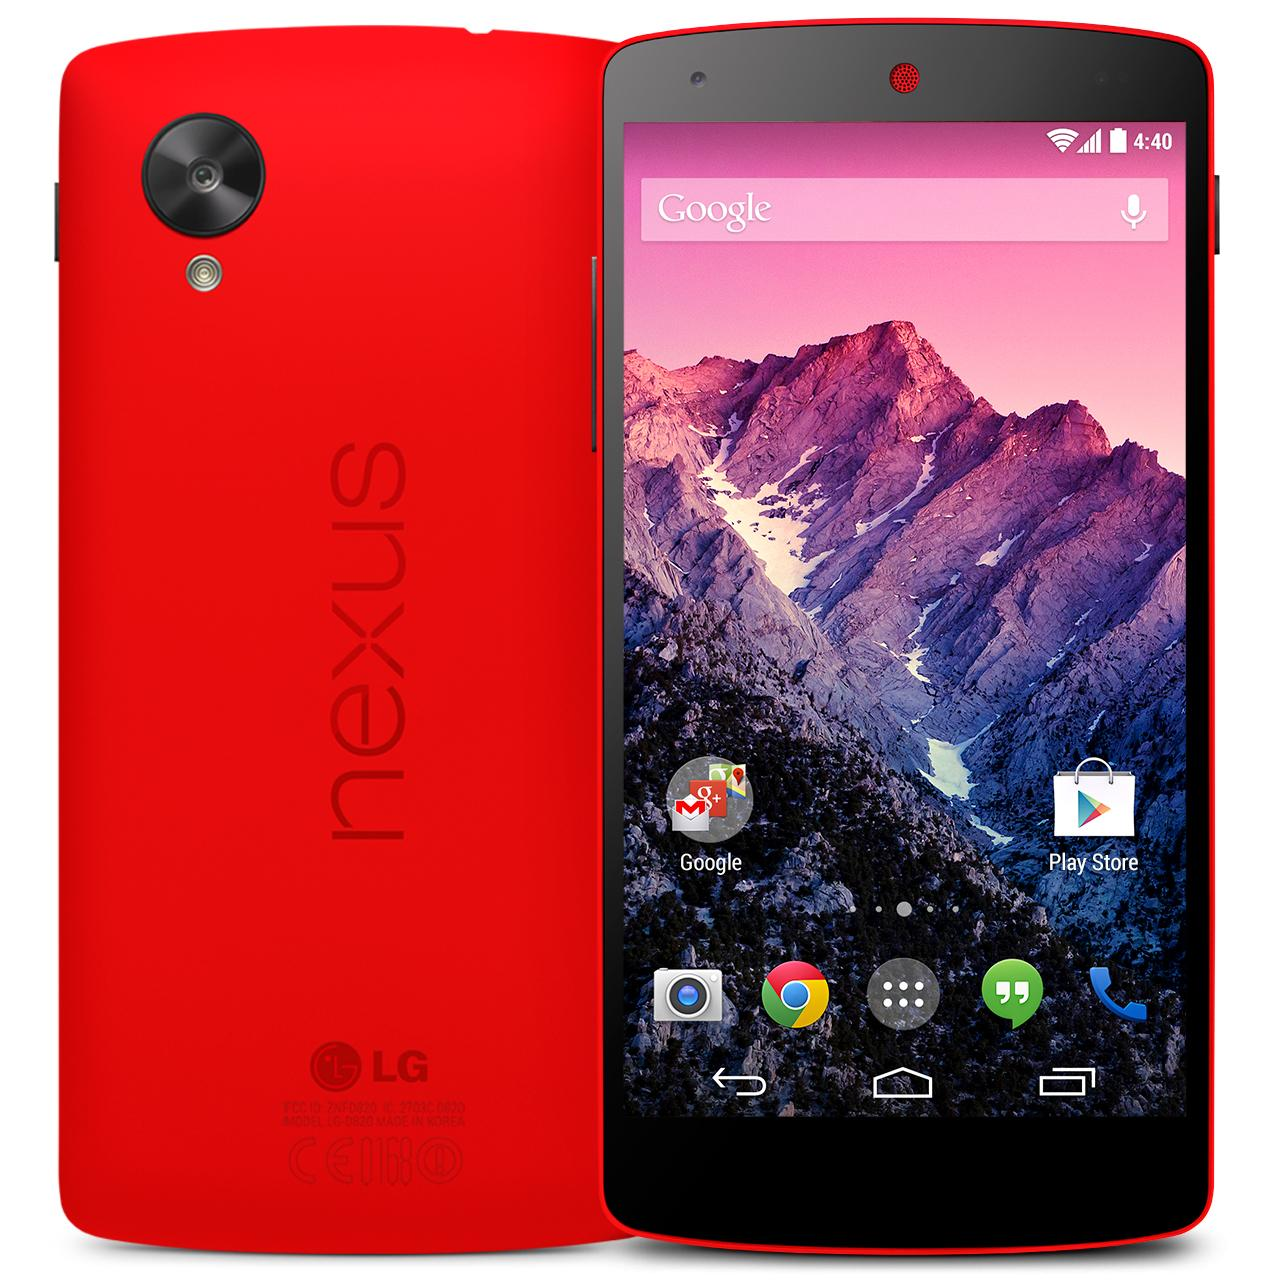 Google LG Nexus 5 Red Release Date Price Cost